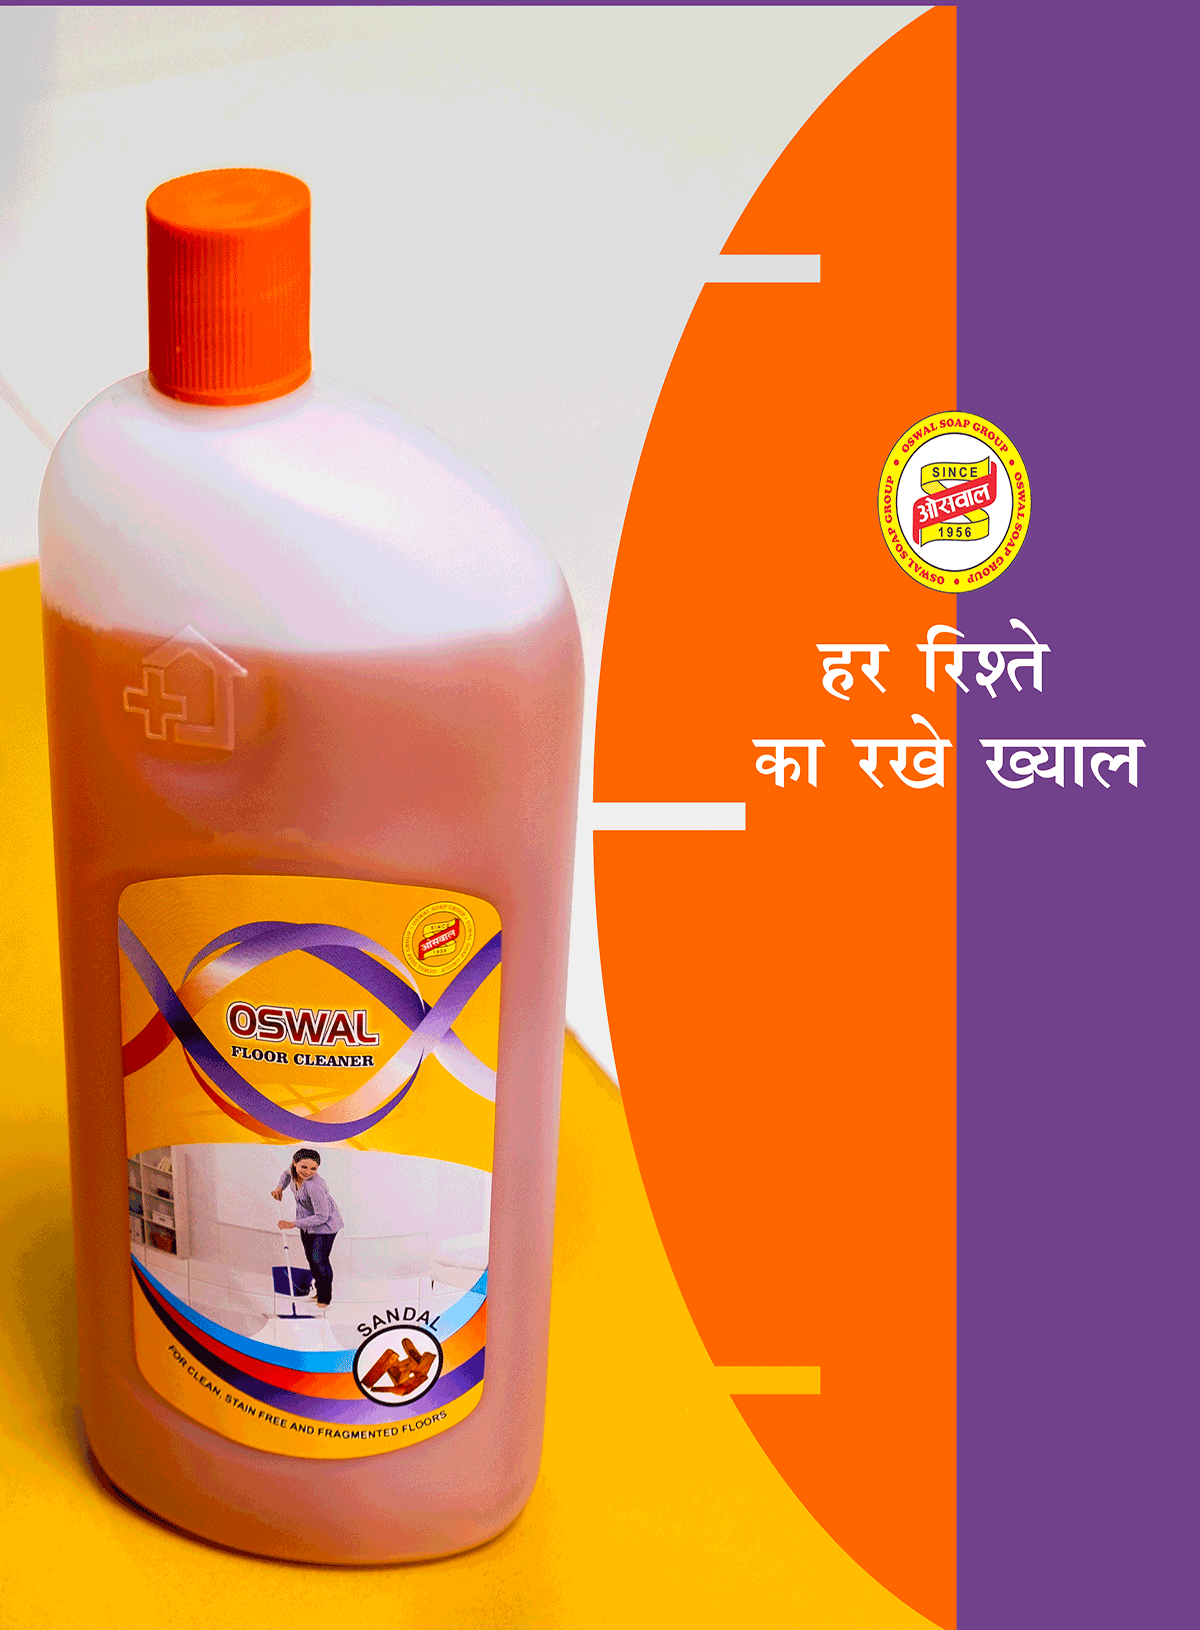 Oswal Floor Cleaner